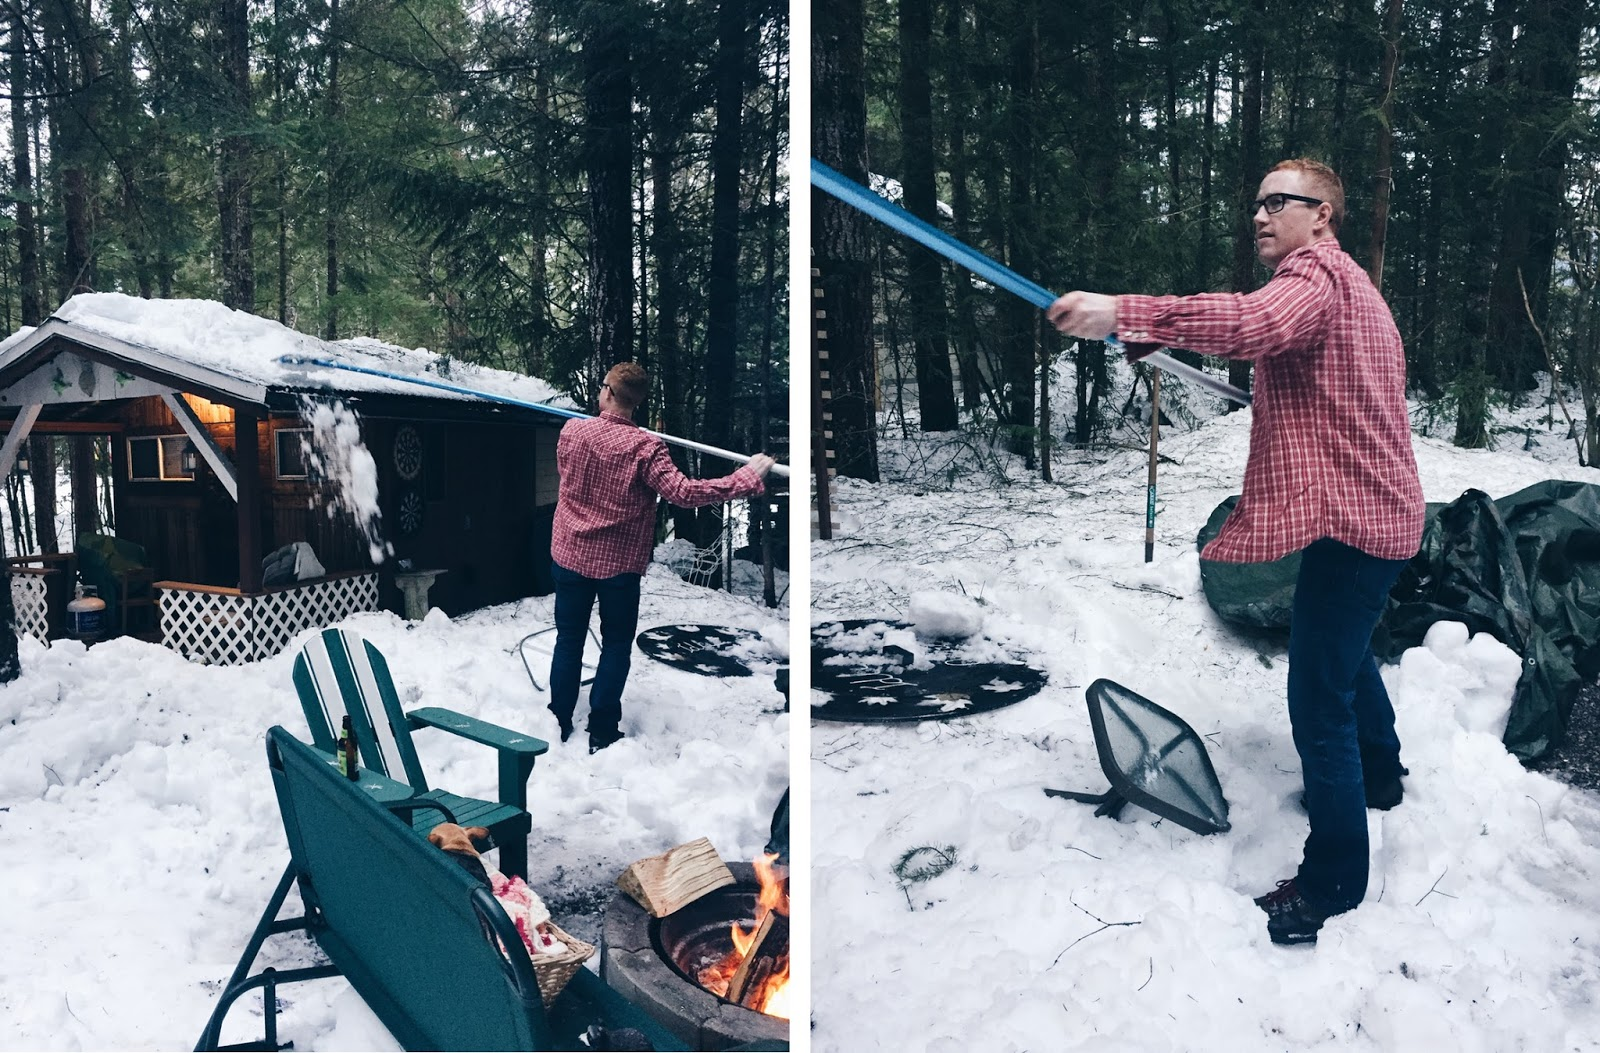 red flannel shirt shovelling snow at the cabin